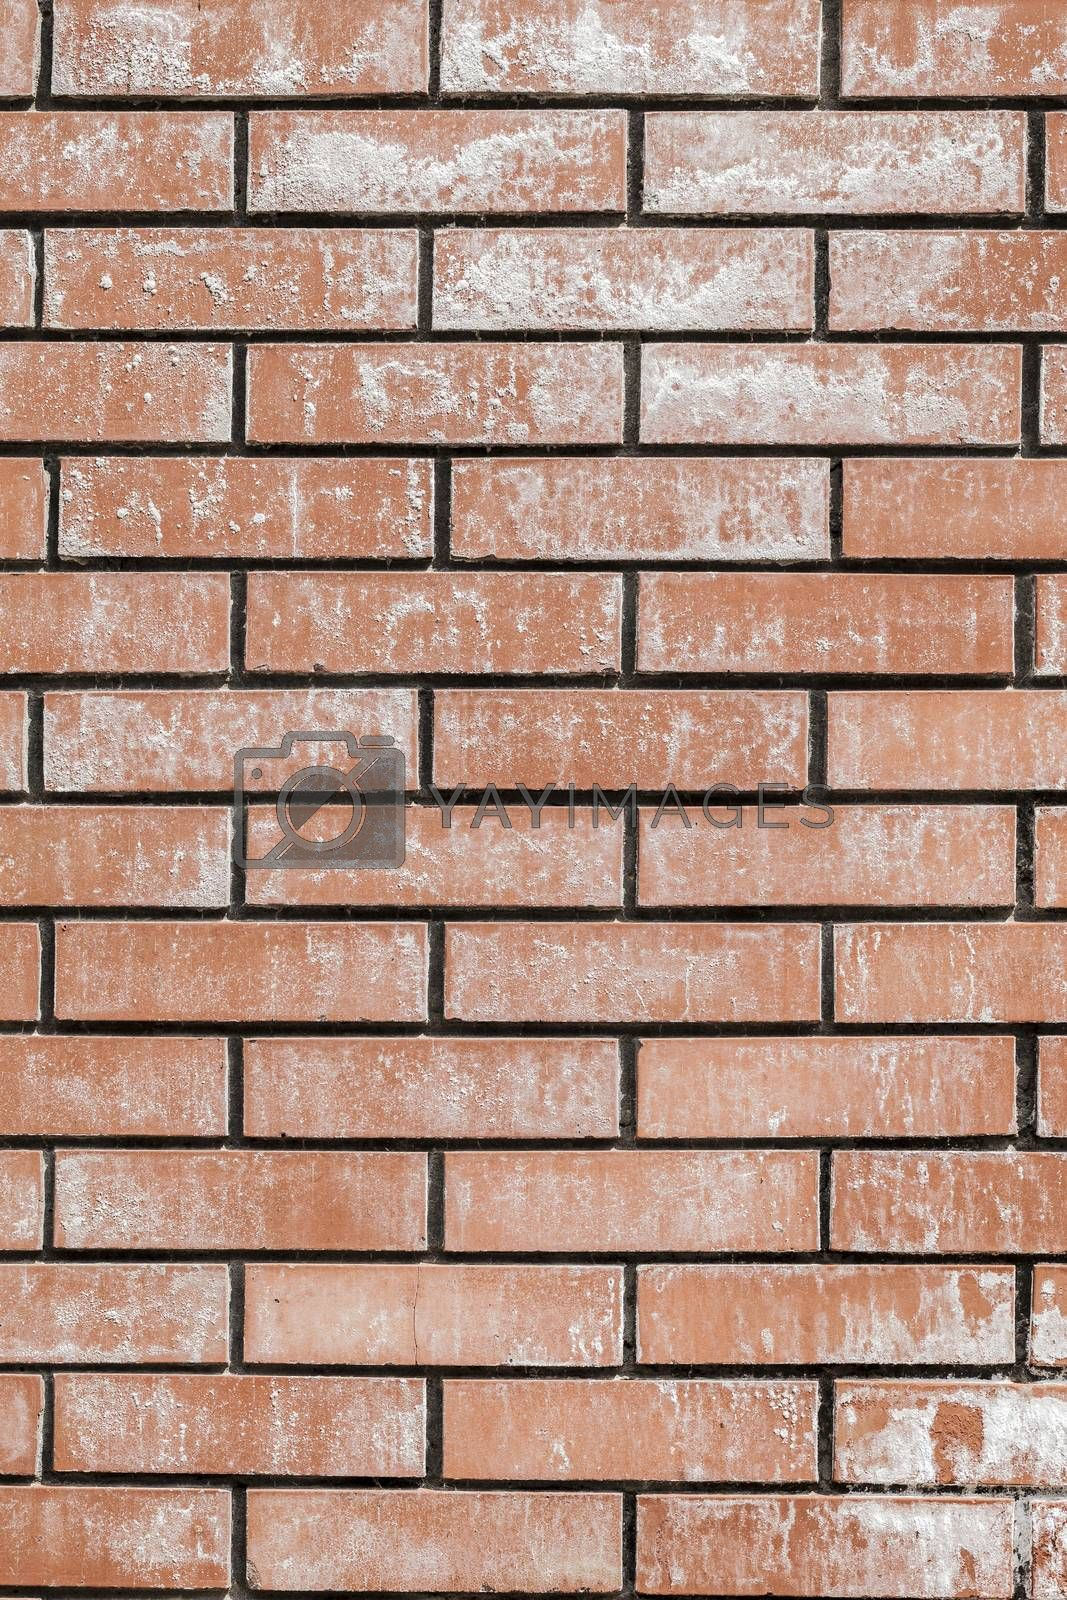 The old grunge red brick wall background